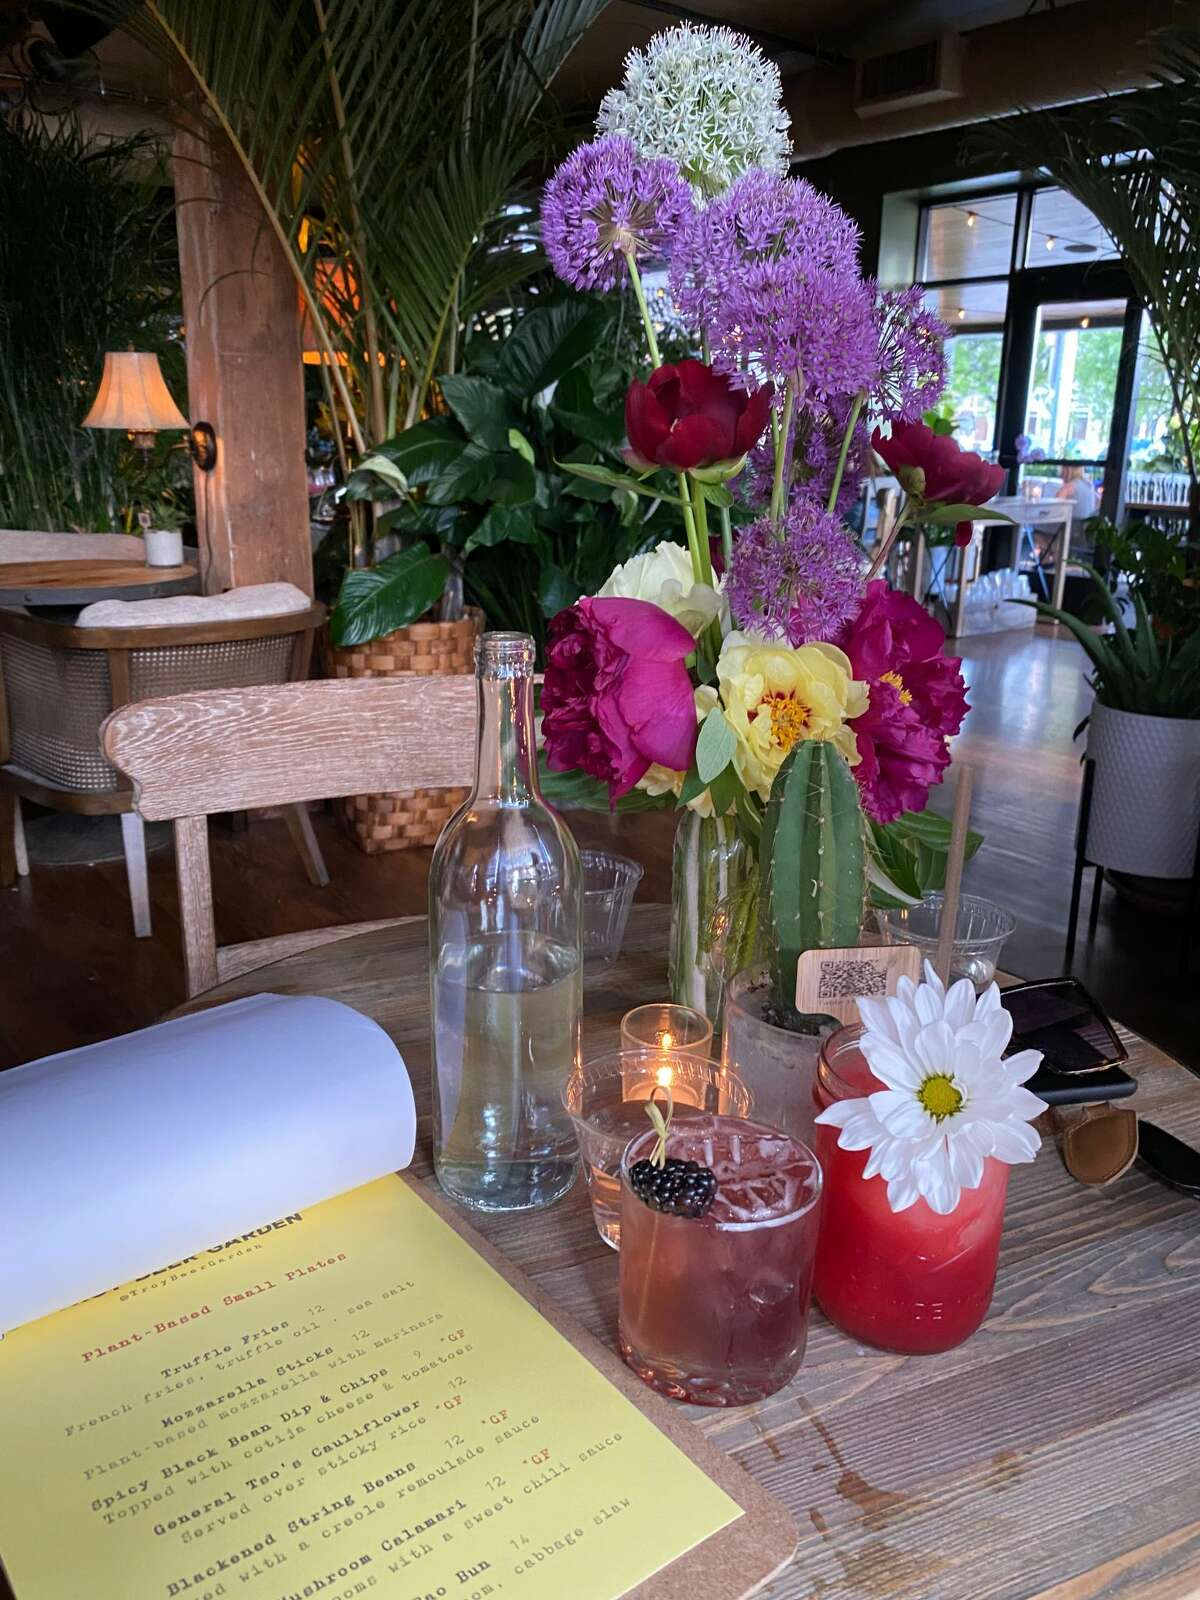 Plants and flowers abound at Troy Beer Garden in Troy, which completely remakes the former Troy location of Wolff's Biergarten and includes an in-house florist. (Susie Davidson Powell/for the Times Union.)